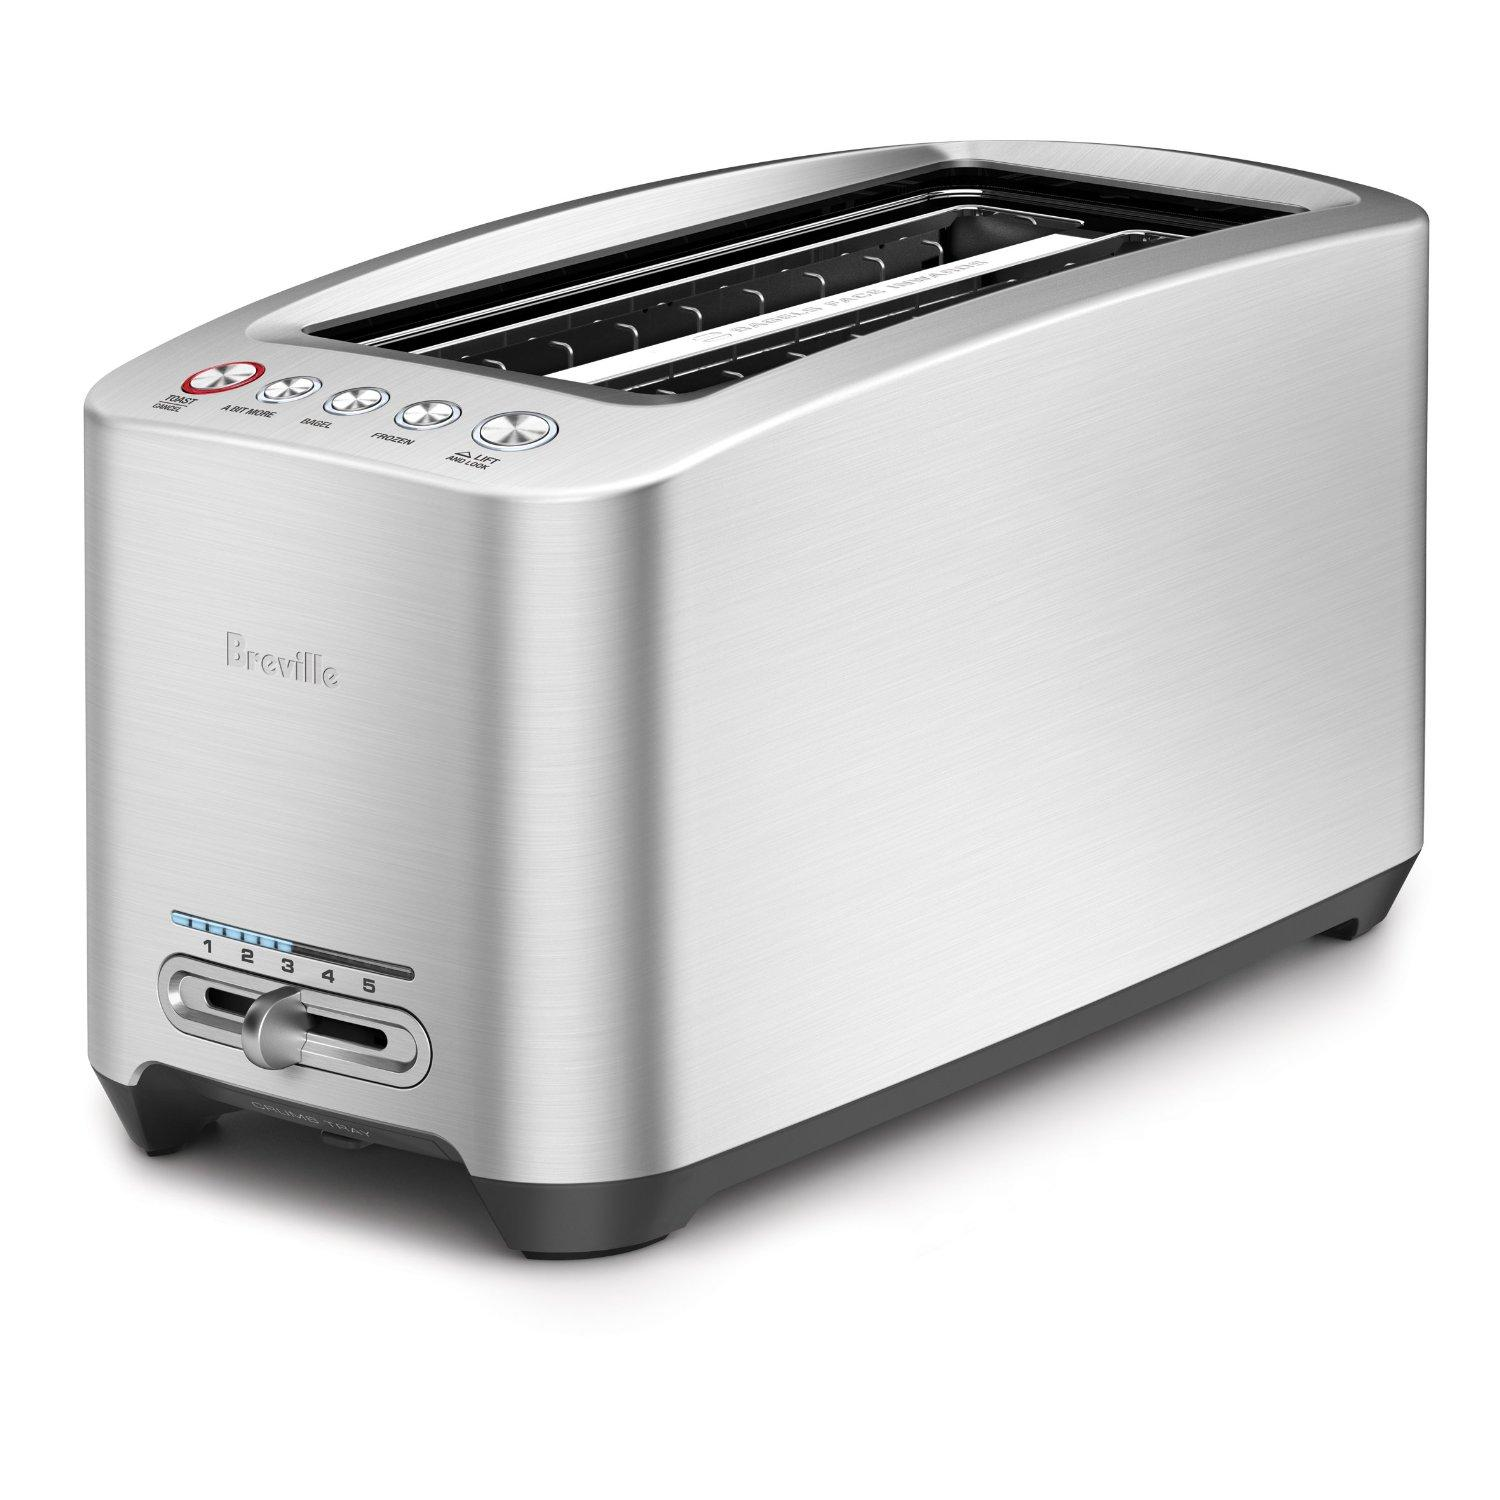 Image Result For Dual It Toaster Amazon